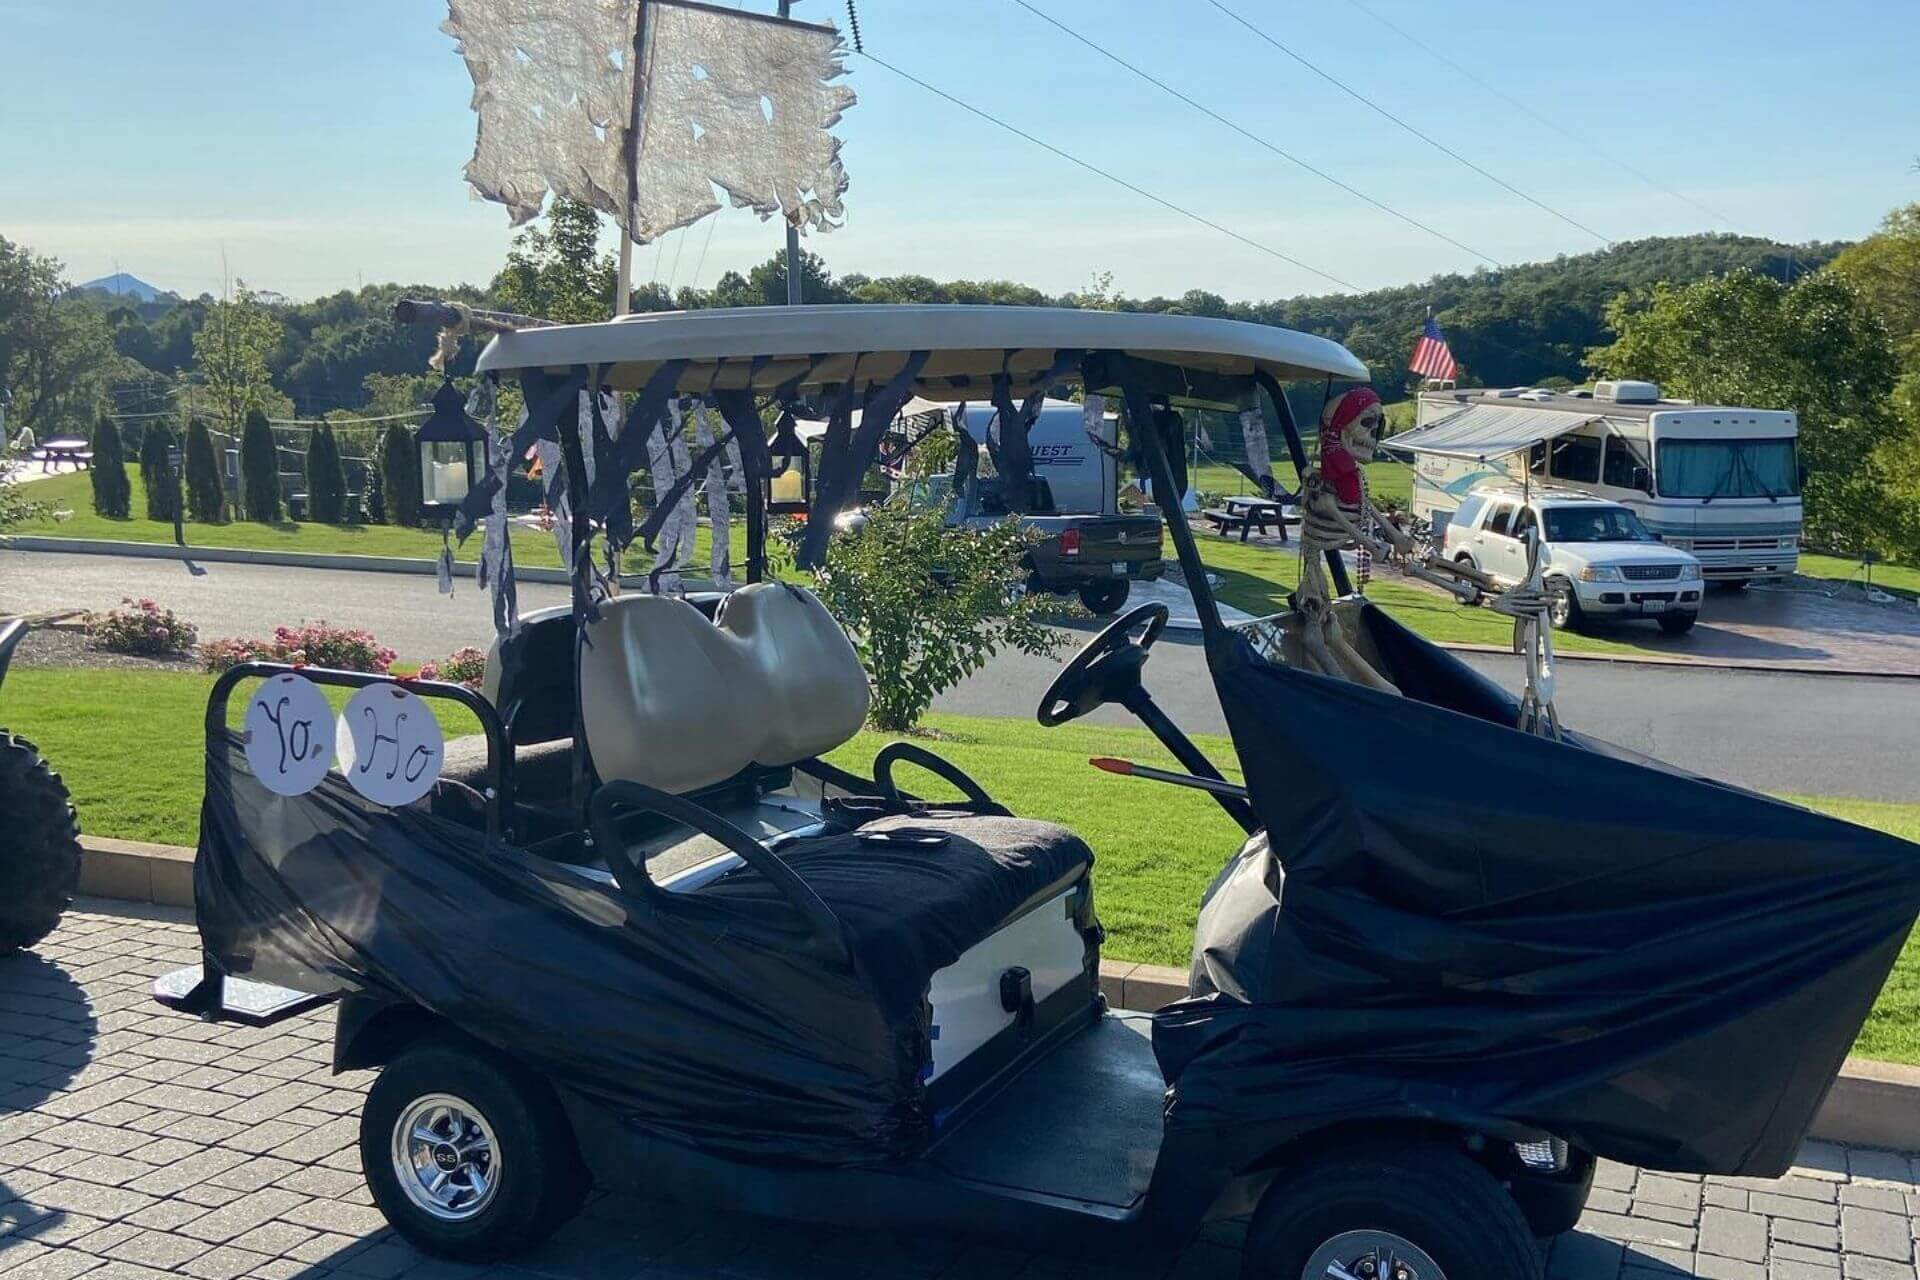 GolfCart Parades Activities at The Ridge Outdoor Resort in the Great Smoky Mountains